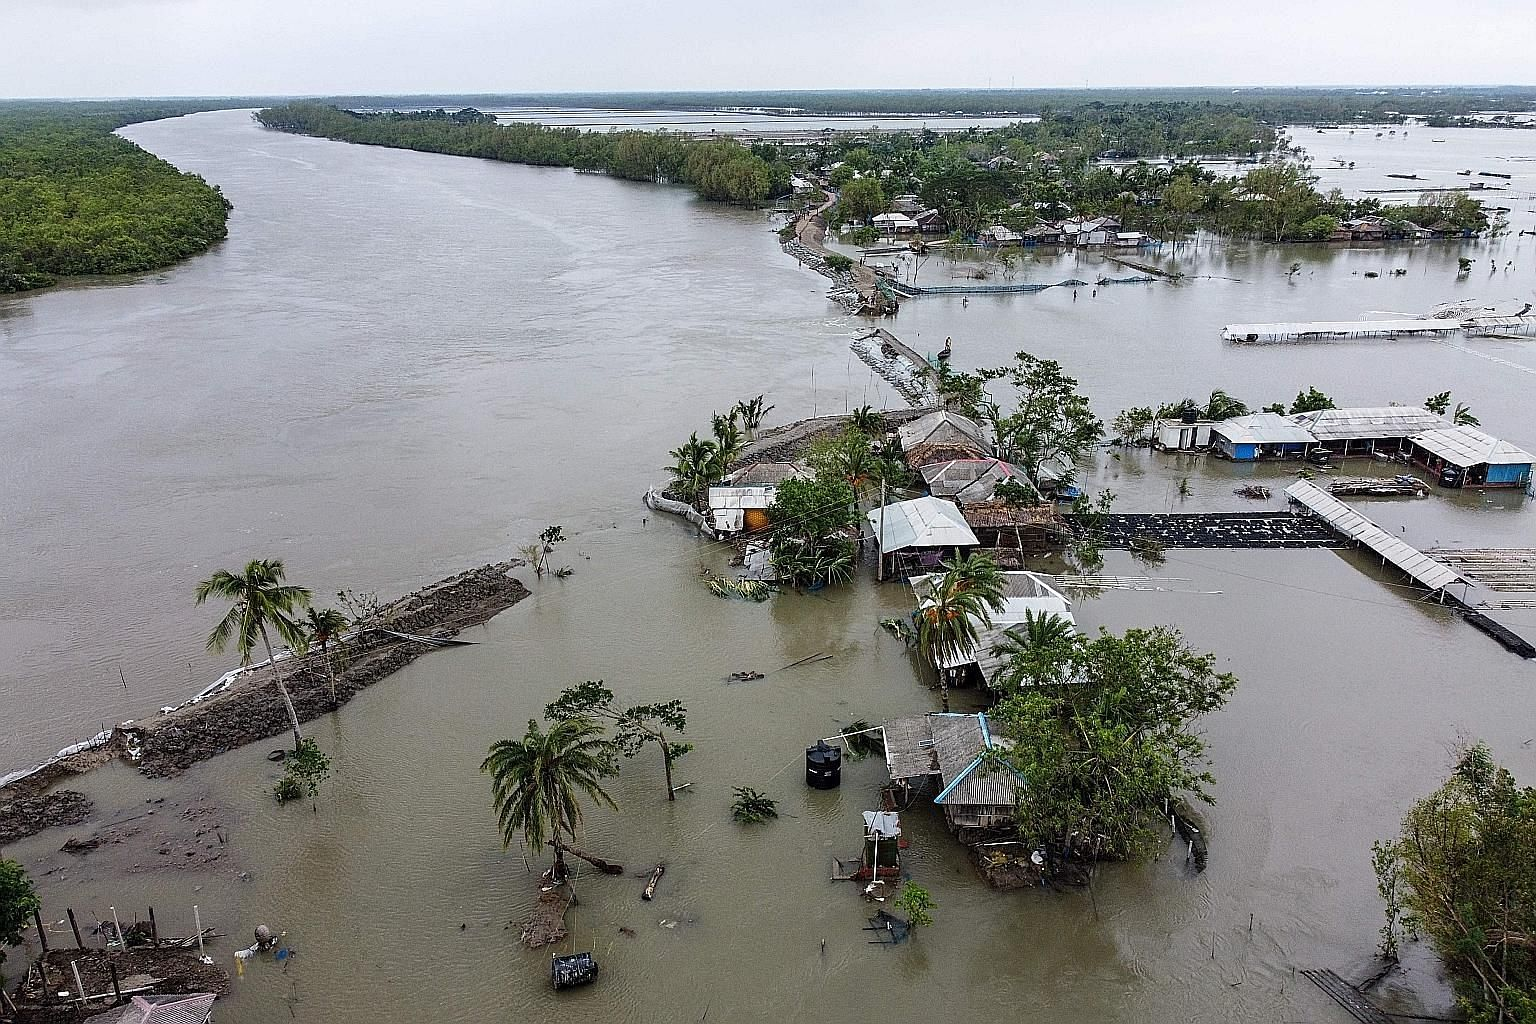 Houses submerged in floodwaters in Shyamnagar, in the Indian state of West Bengal, after Cyclone Amphan caused a dam to break. Chief Minister Mamata Banerjee said at least 72 people had died. In neighbouring Bangladesh, the initial toll was put at 10